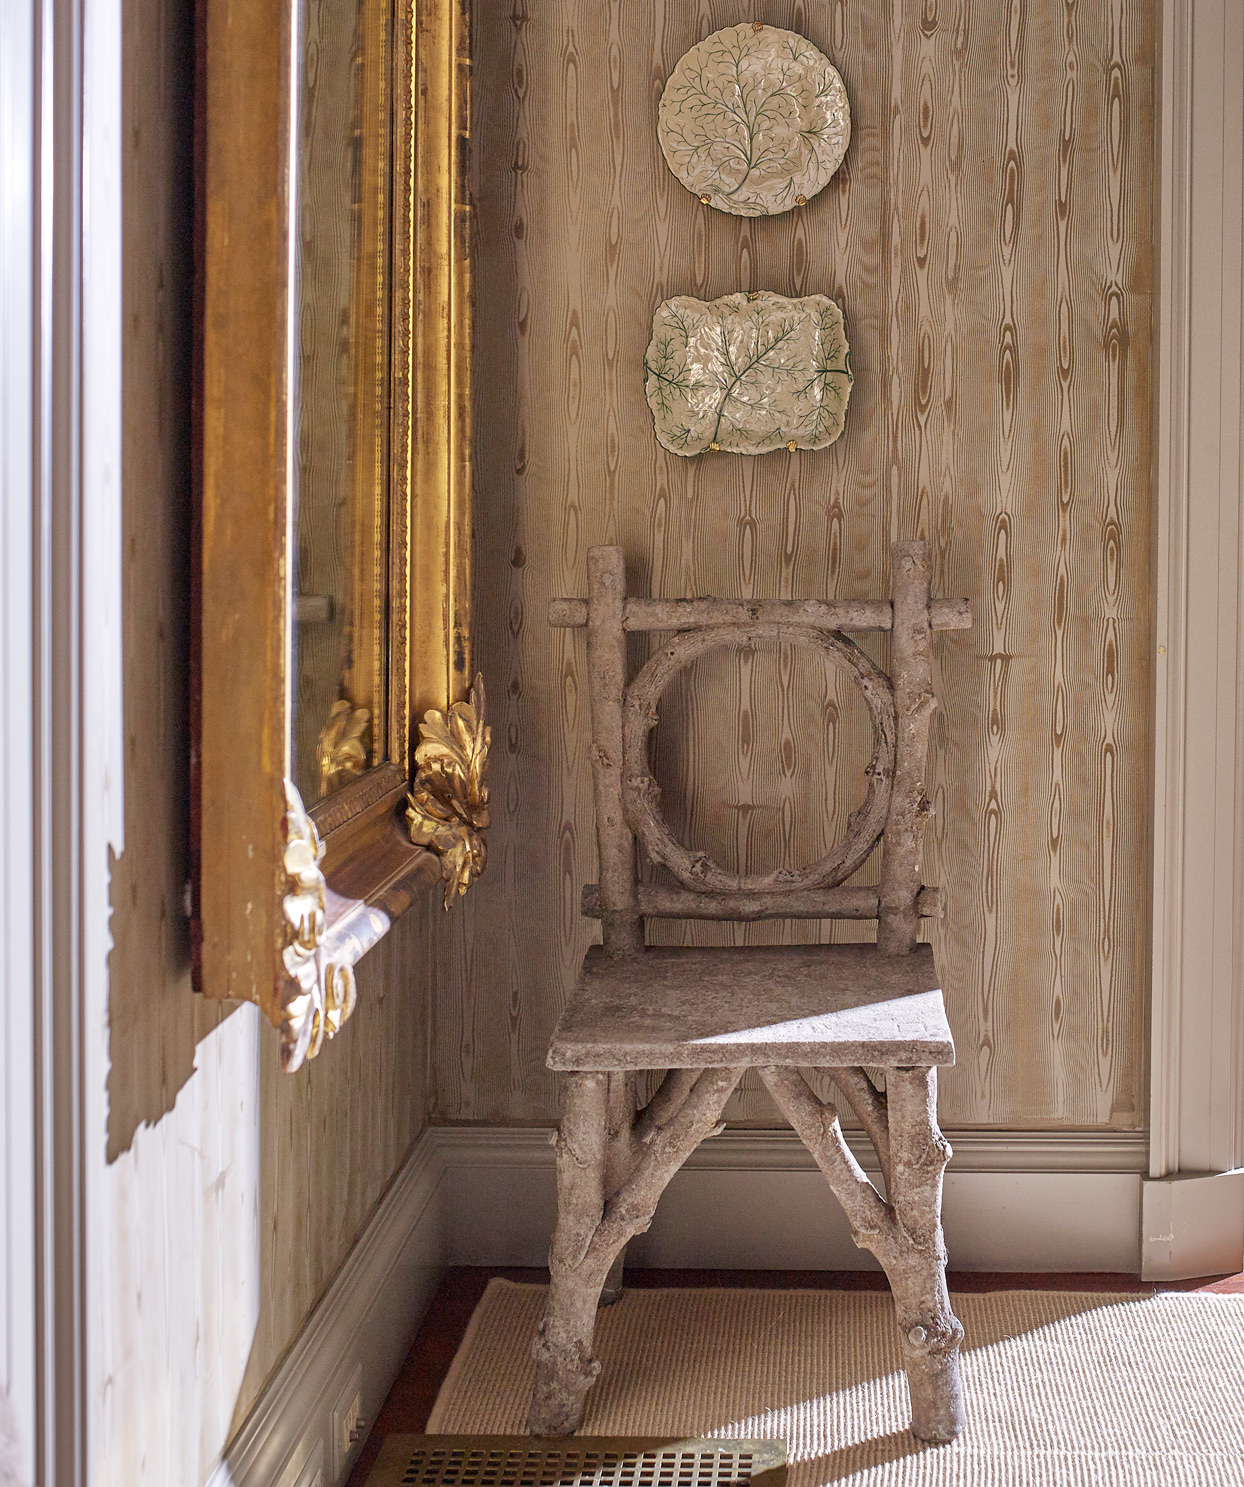 faux bois chair against hand-painted walls